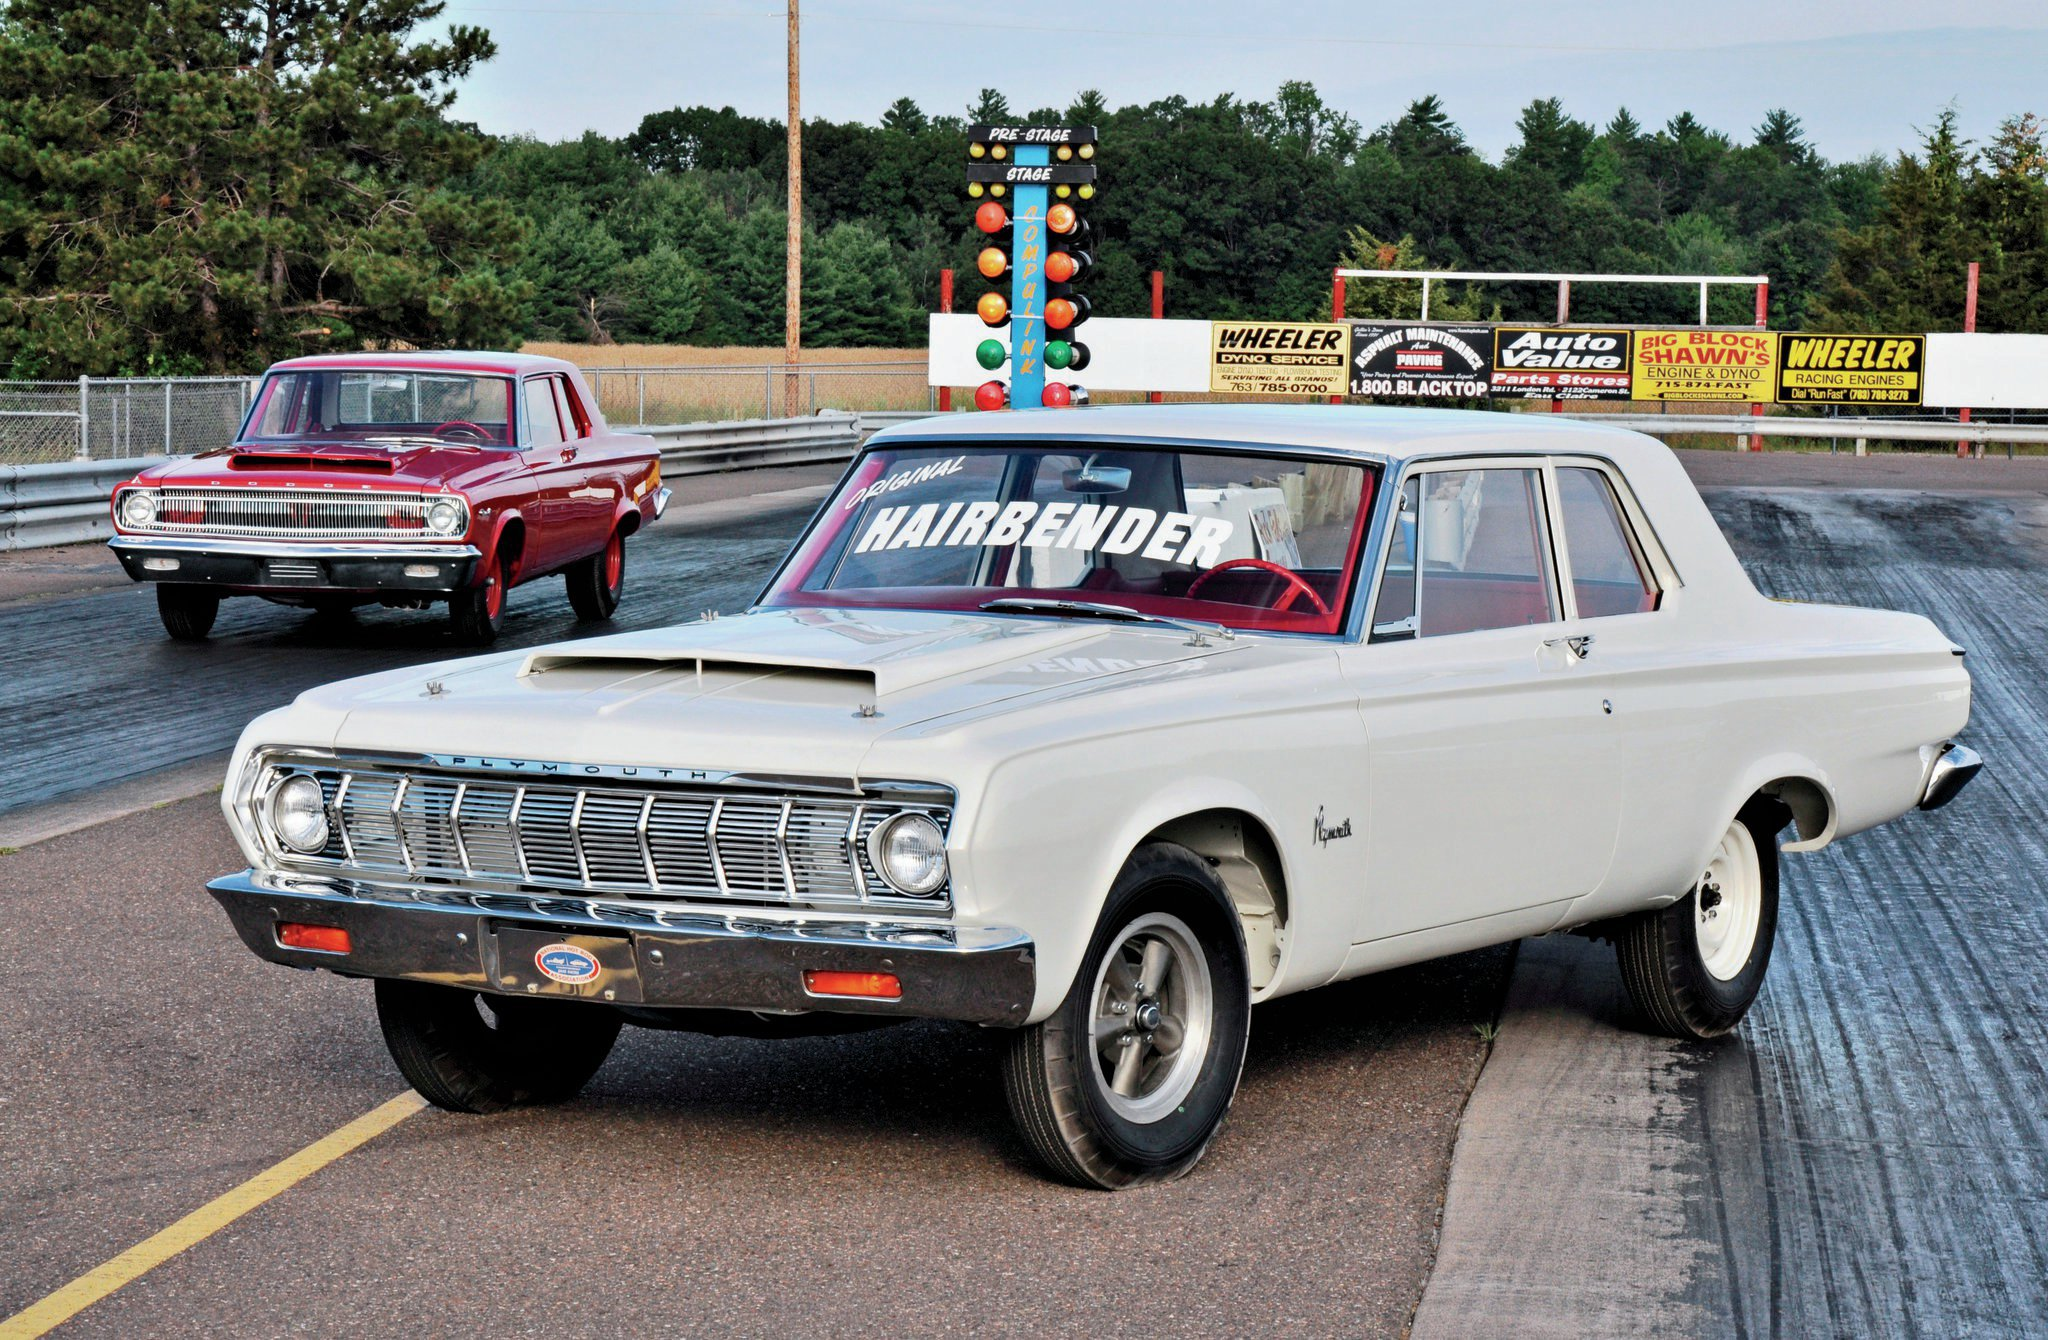 Jim Hale restored the well-known Hairbender, a real-deal '64 Race Hemi Plymouth Savoy. Exact in every detail, this Savoy is a textbook example for any '64 Race Hemi restoration. Behind the Savoy is a '65 Dodge A990 Coronet. Both of these spectacular Hemi cars are owned by Gordon Rohde.